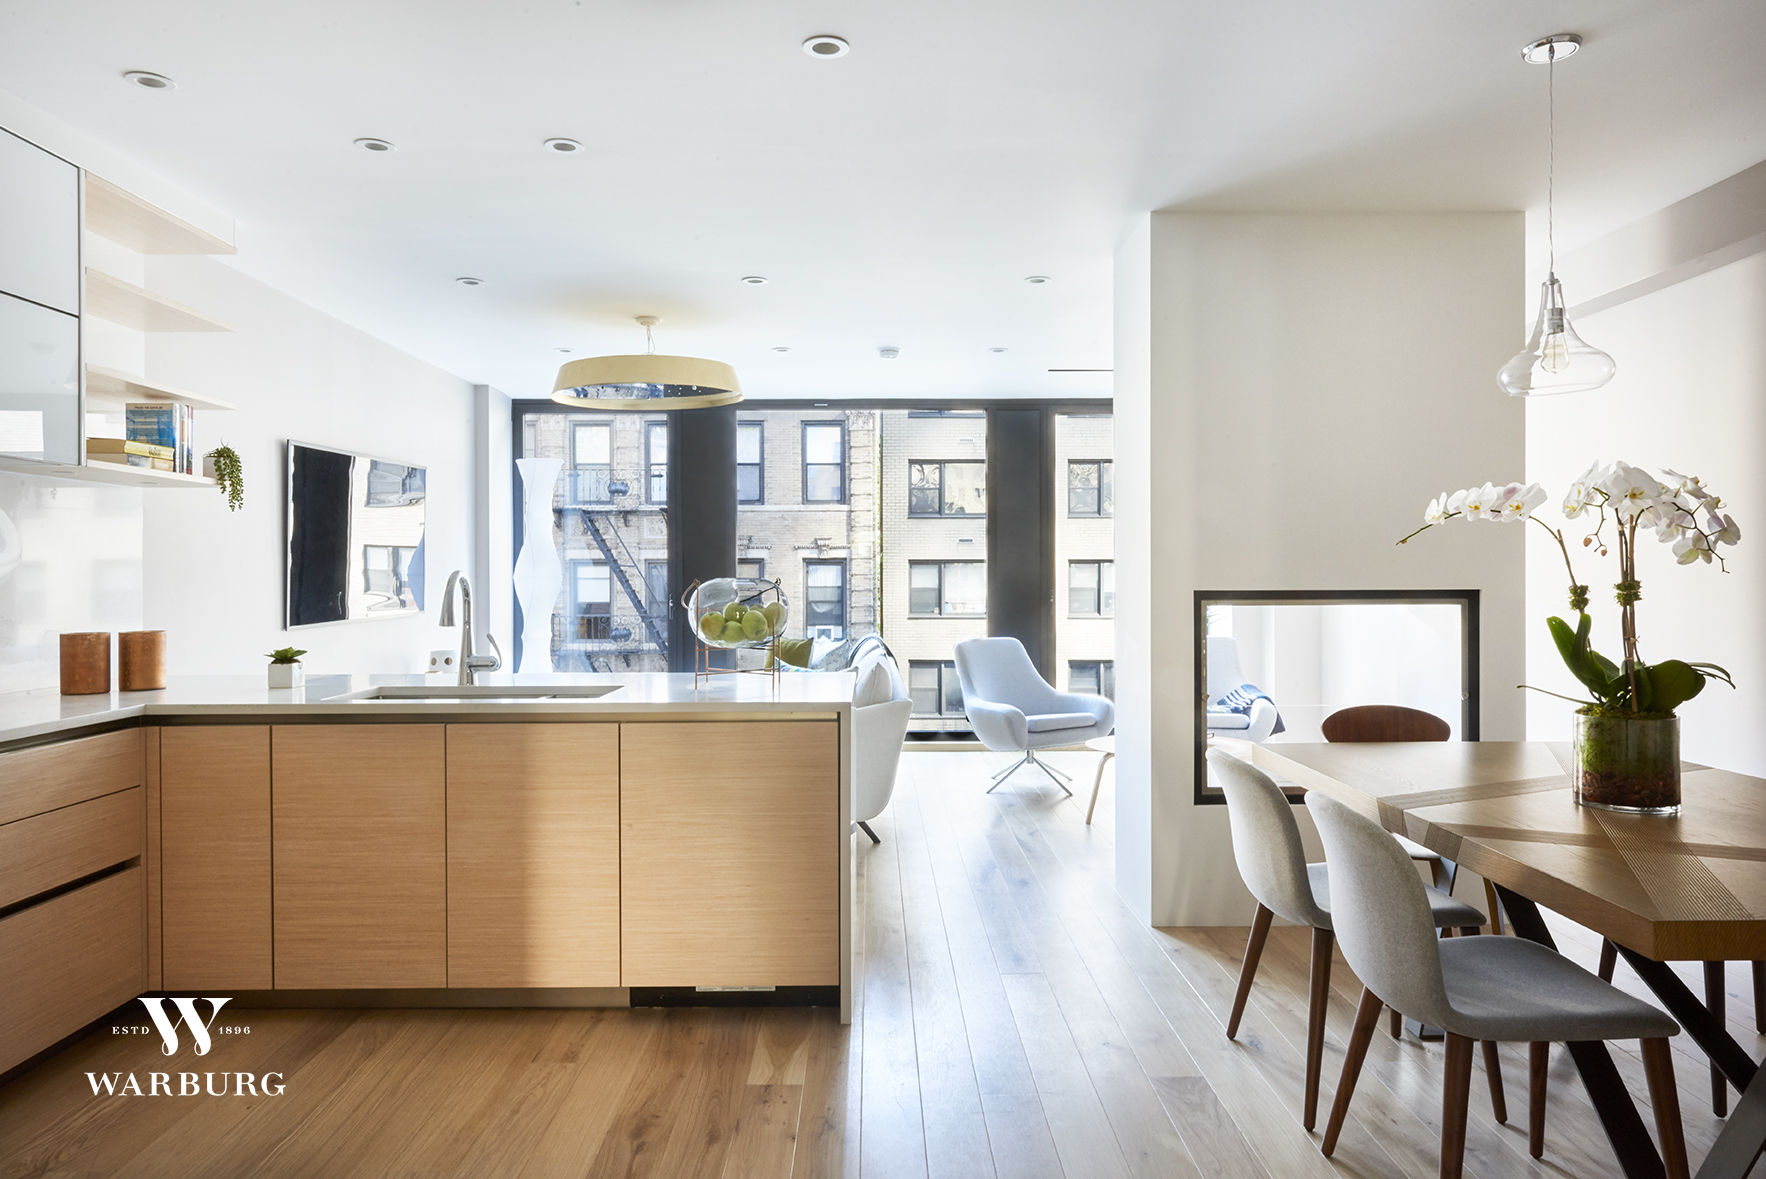 323 East 52nd St., Apt PH Photo 1 - WR-340033